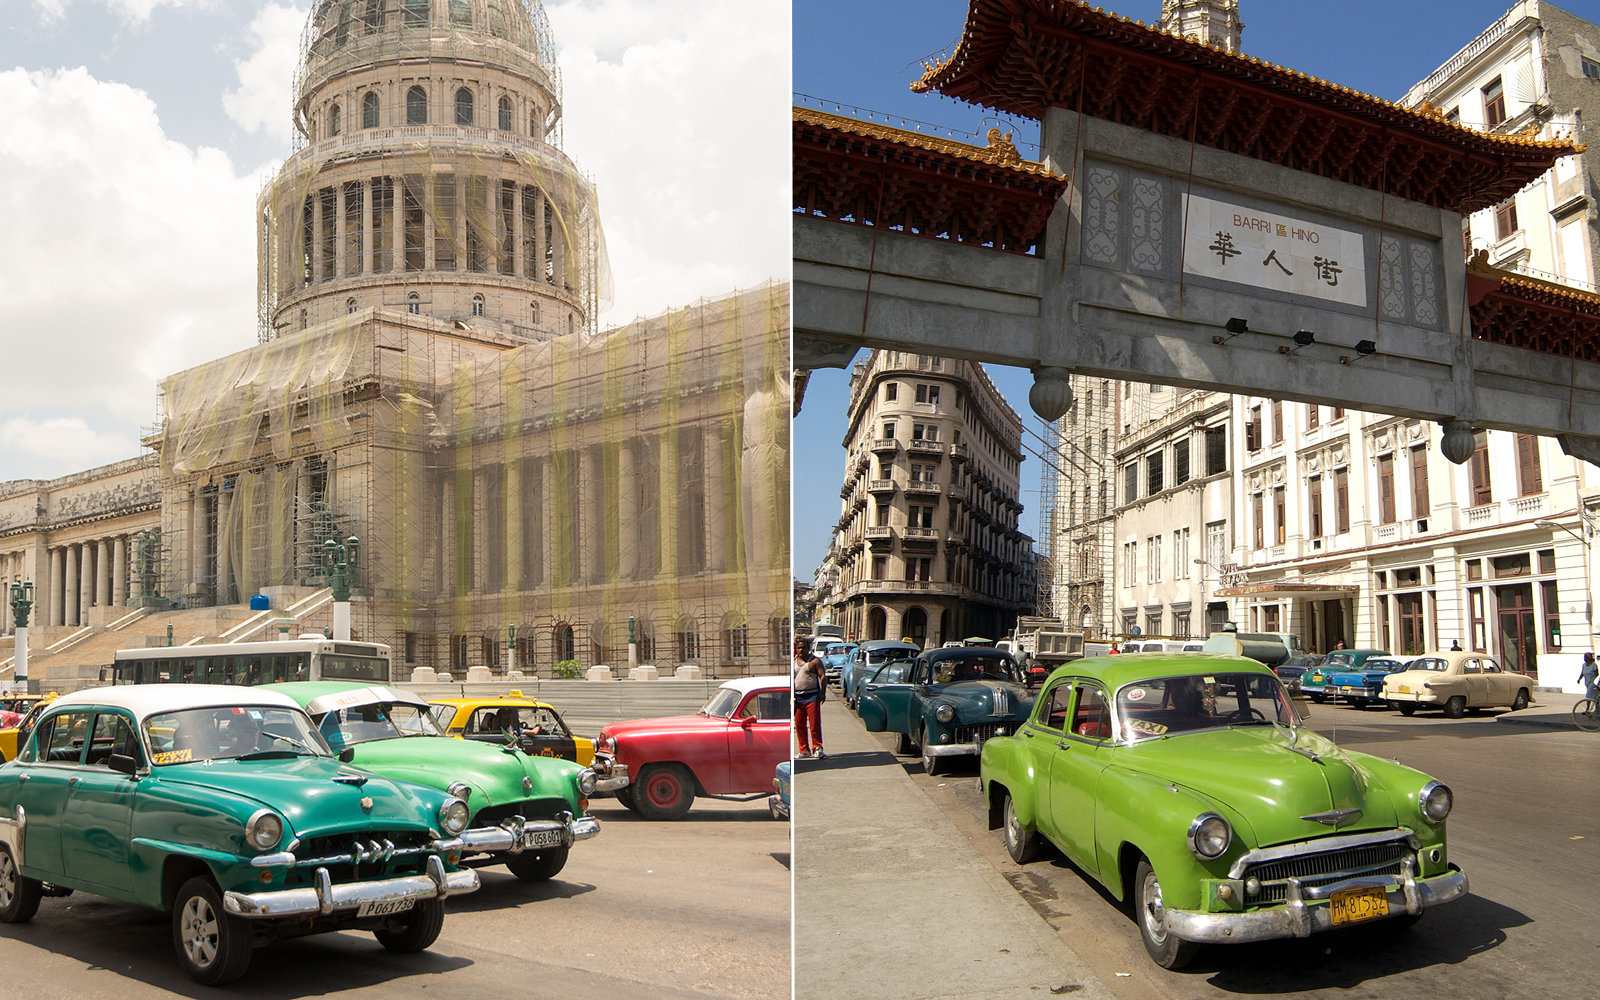 NATIONAL CAPITOL BUILDING, HAVANA, CUBA - 2014/07/10: El Capitolio, or National Capitol Building was the seat of government in Cuba until after the Cuban Revolution in 1959, and is now home to the Cuban Academy of Sciences. Completed in 1929, it was the